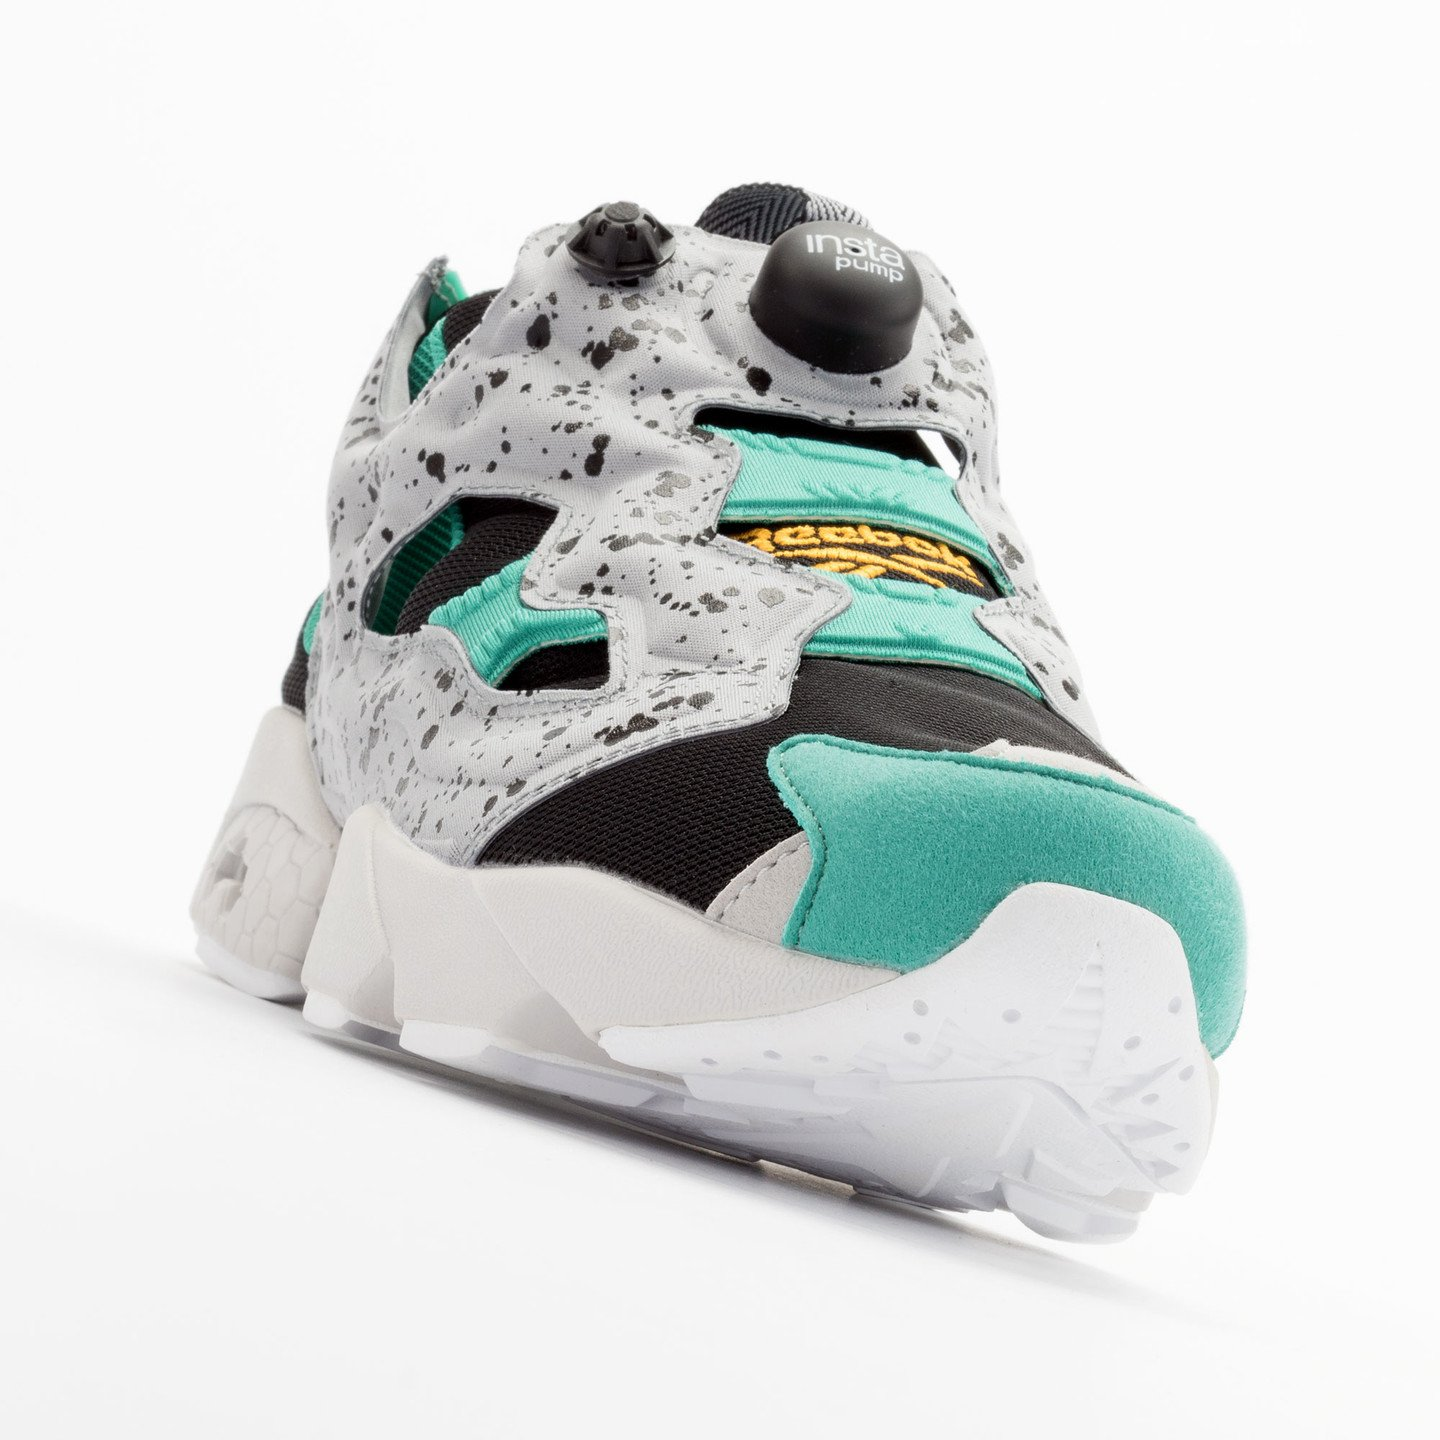 Reebok Instapump Fury SP Black / Grey / Green / Gold V66115-43